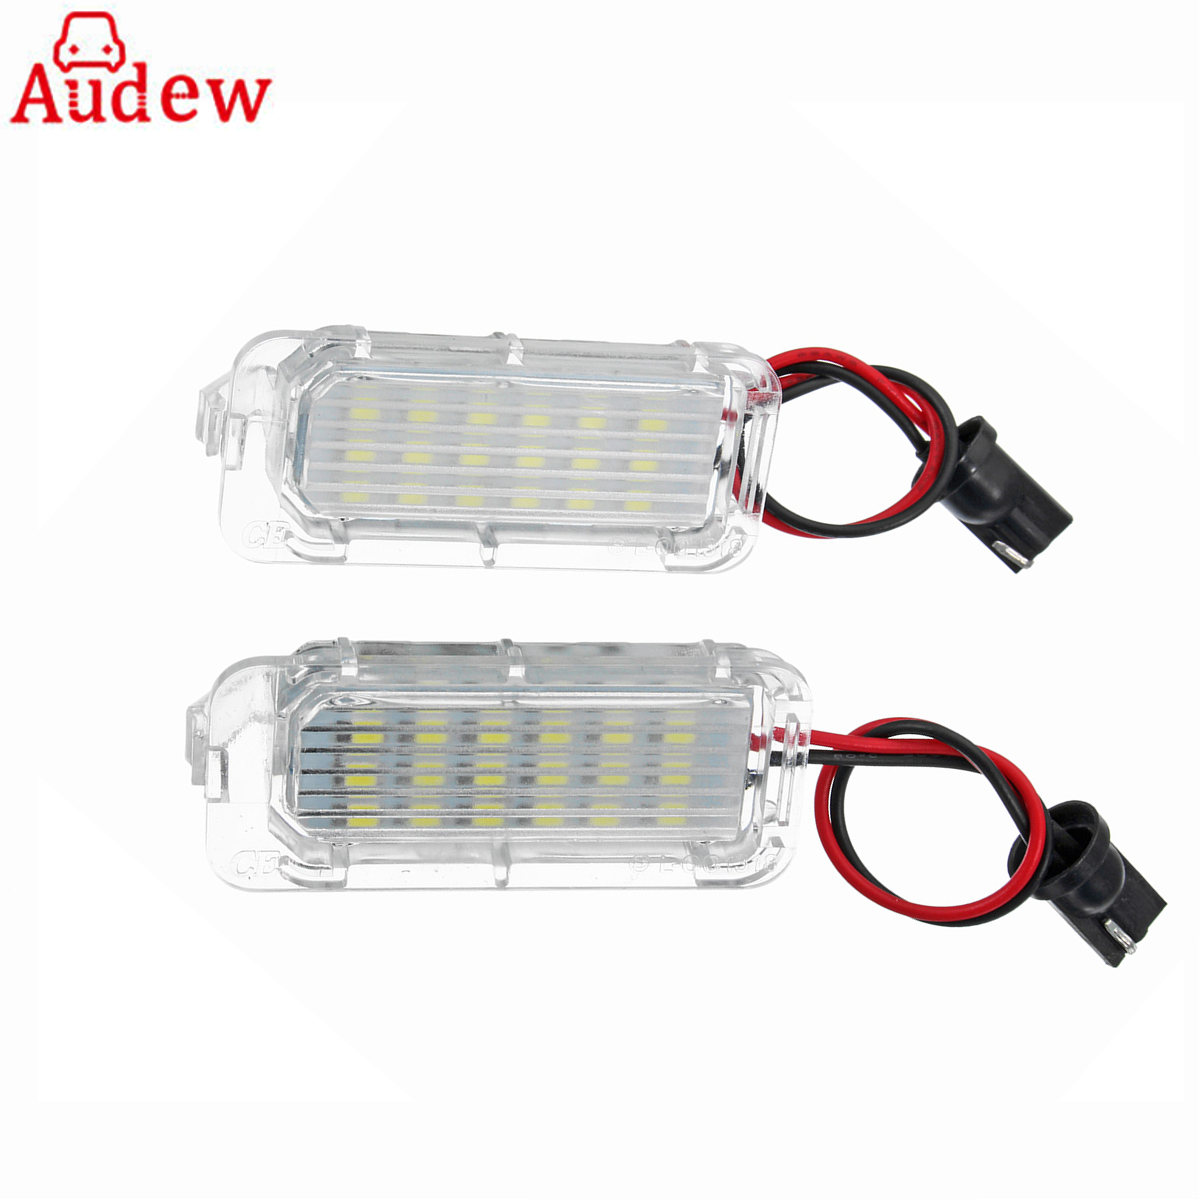 2PCS Car LED License Plate Light 18LED Lamps No error For Ford/Focus/Fiesta/Mondeo for MK4 Kuga for Galaxy for S-max for C max